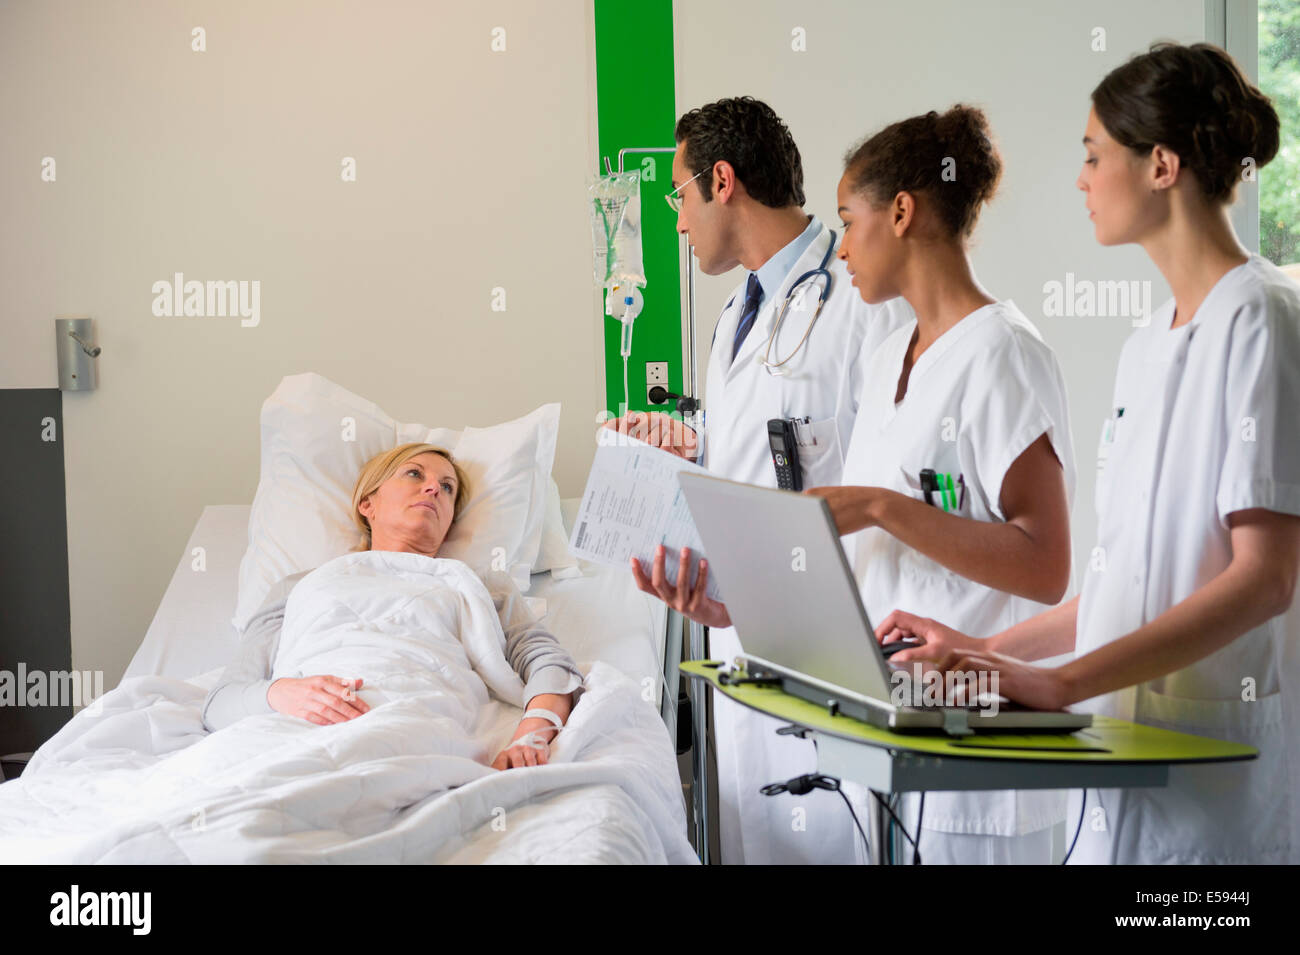 Medical team discussing female patient record in hospital bed - Stock Image